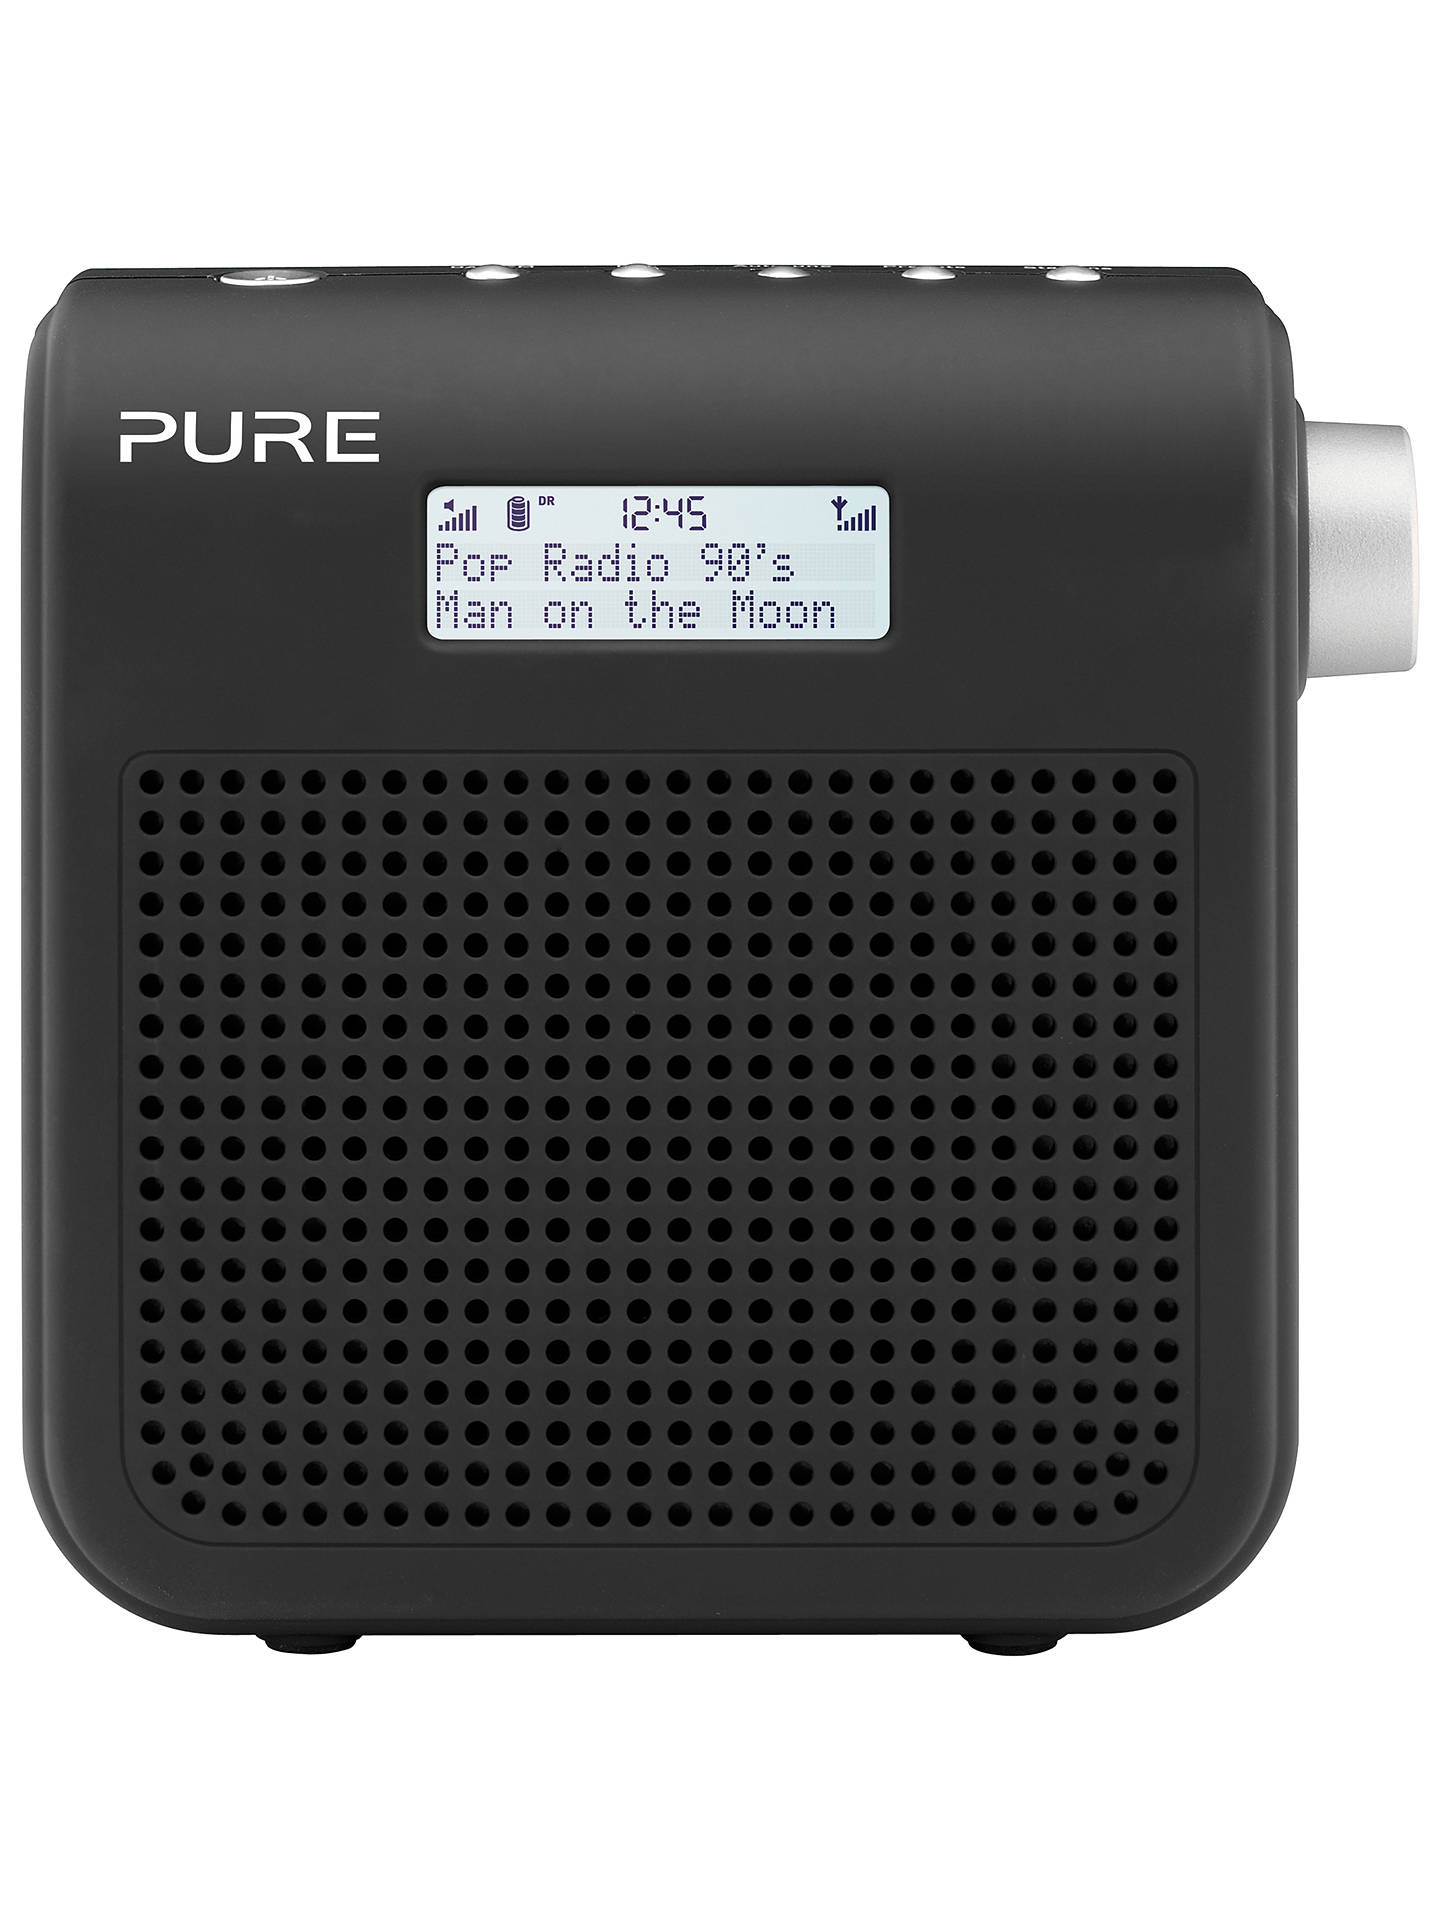 pure one mini series ii dab fm digital radio at john lewis. Black Bedroom Furniture Sets. Home Design Ideas